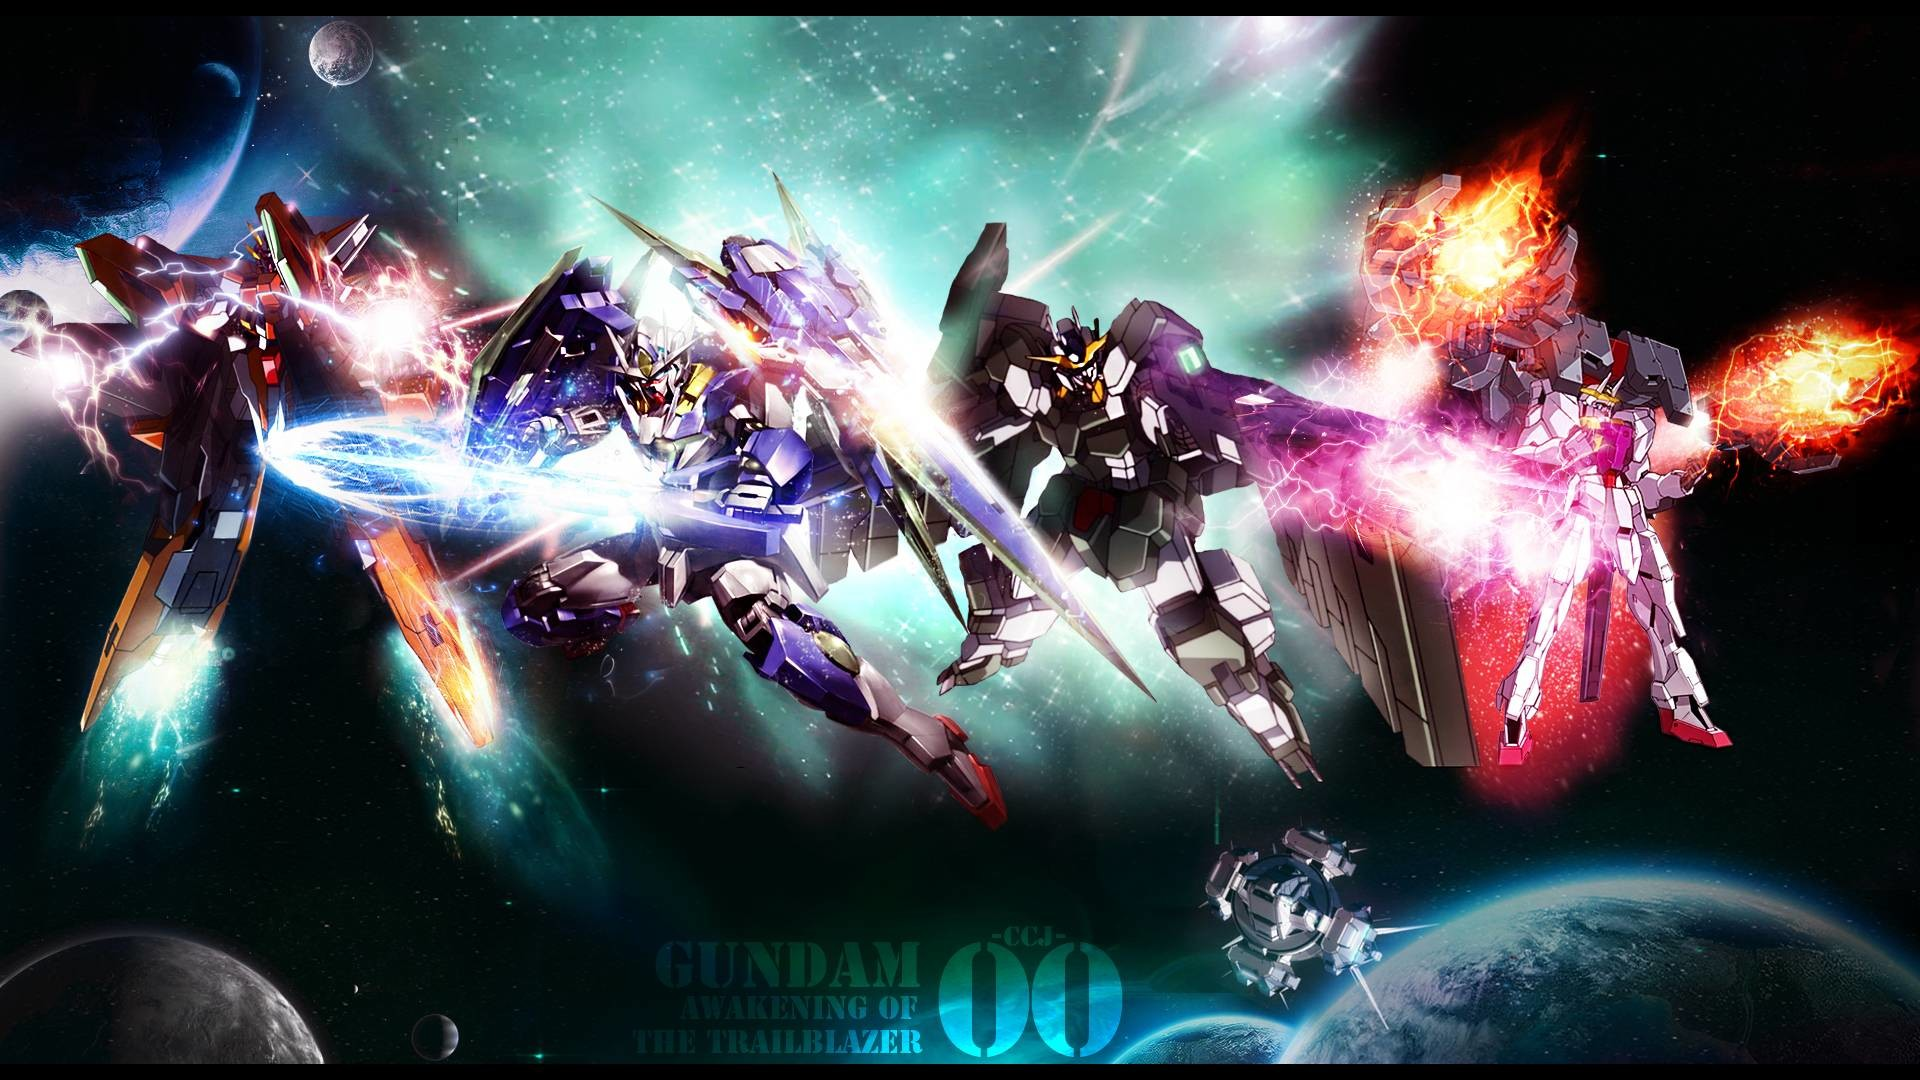 1920x1080 Wallpaper: Gundam Wallpaper 1920x1080 (65+ Images